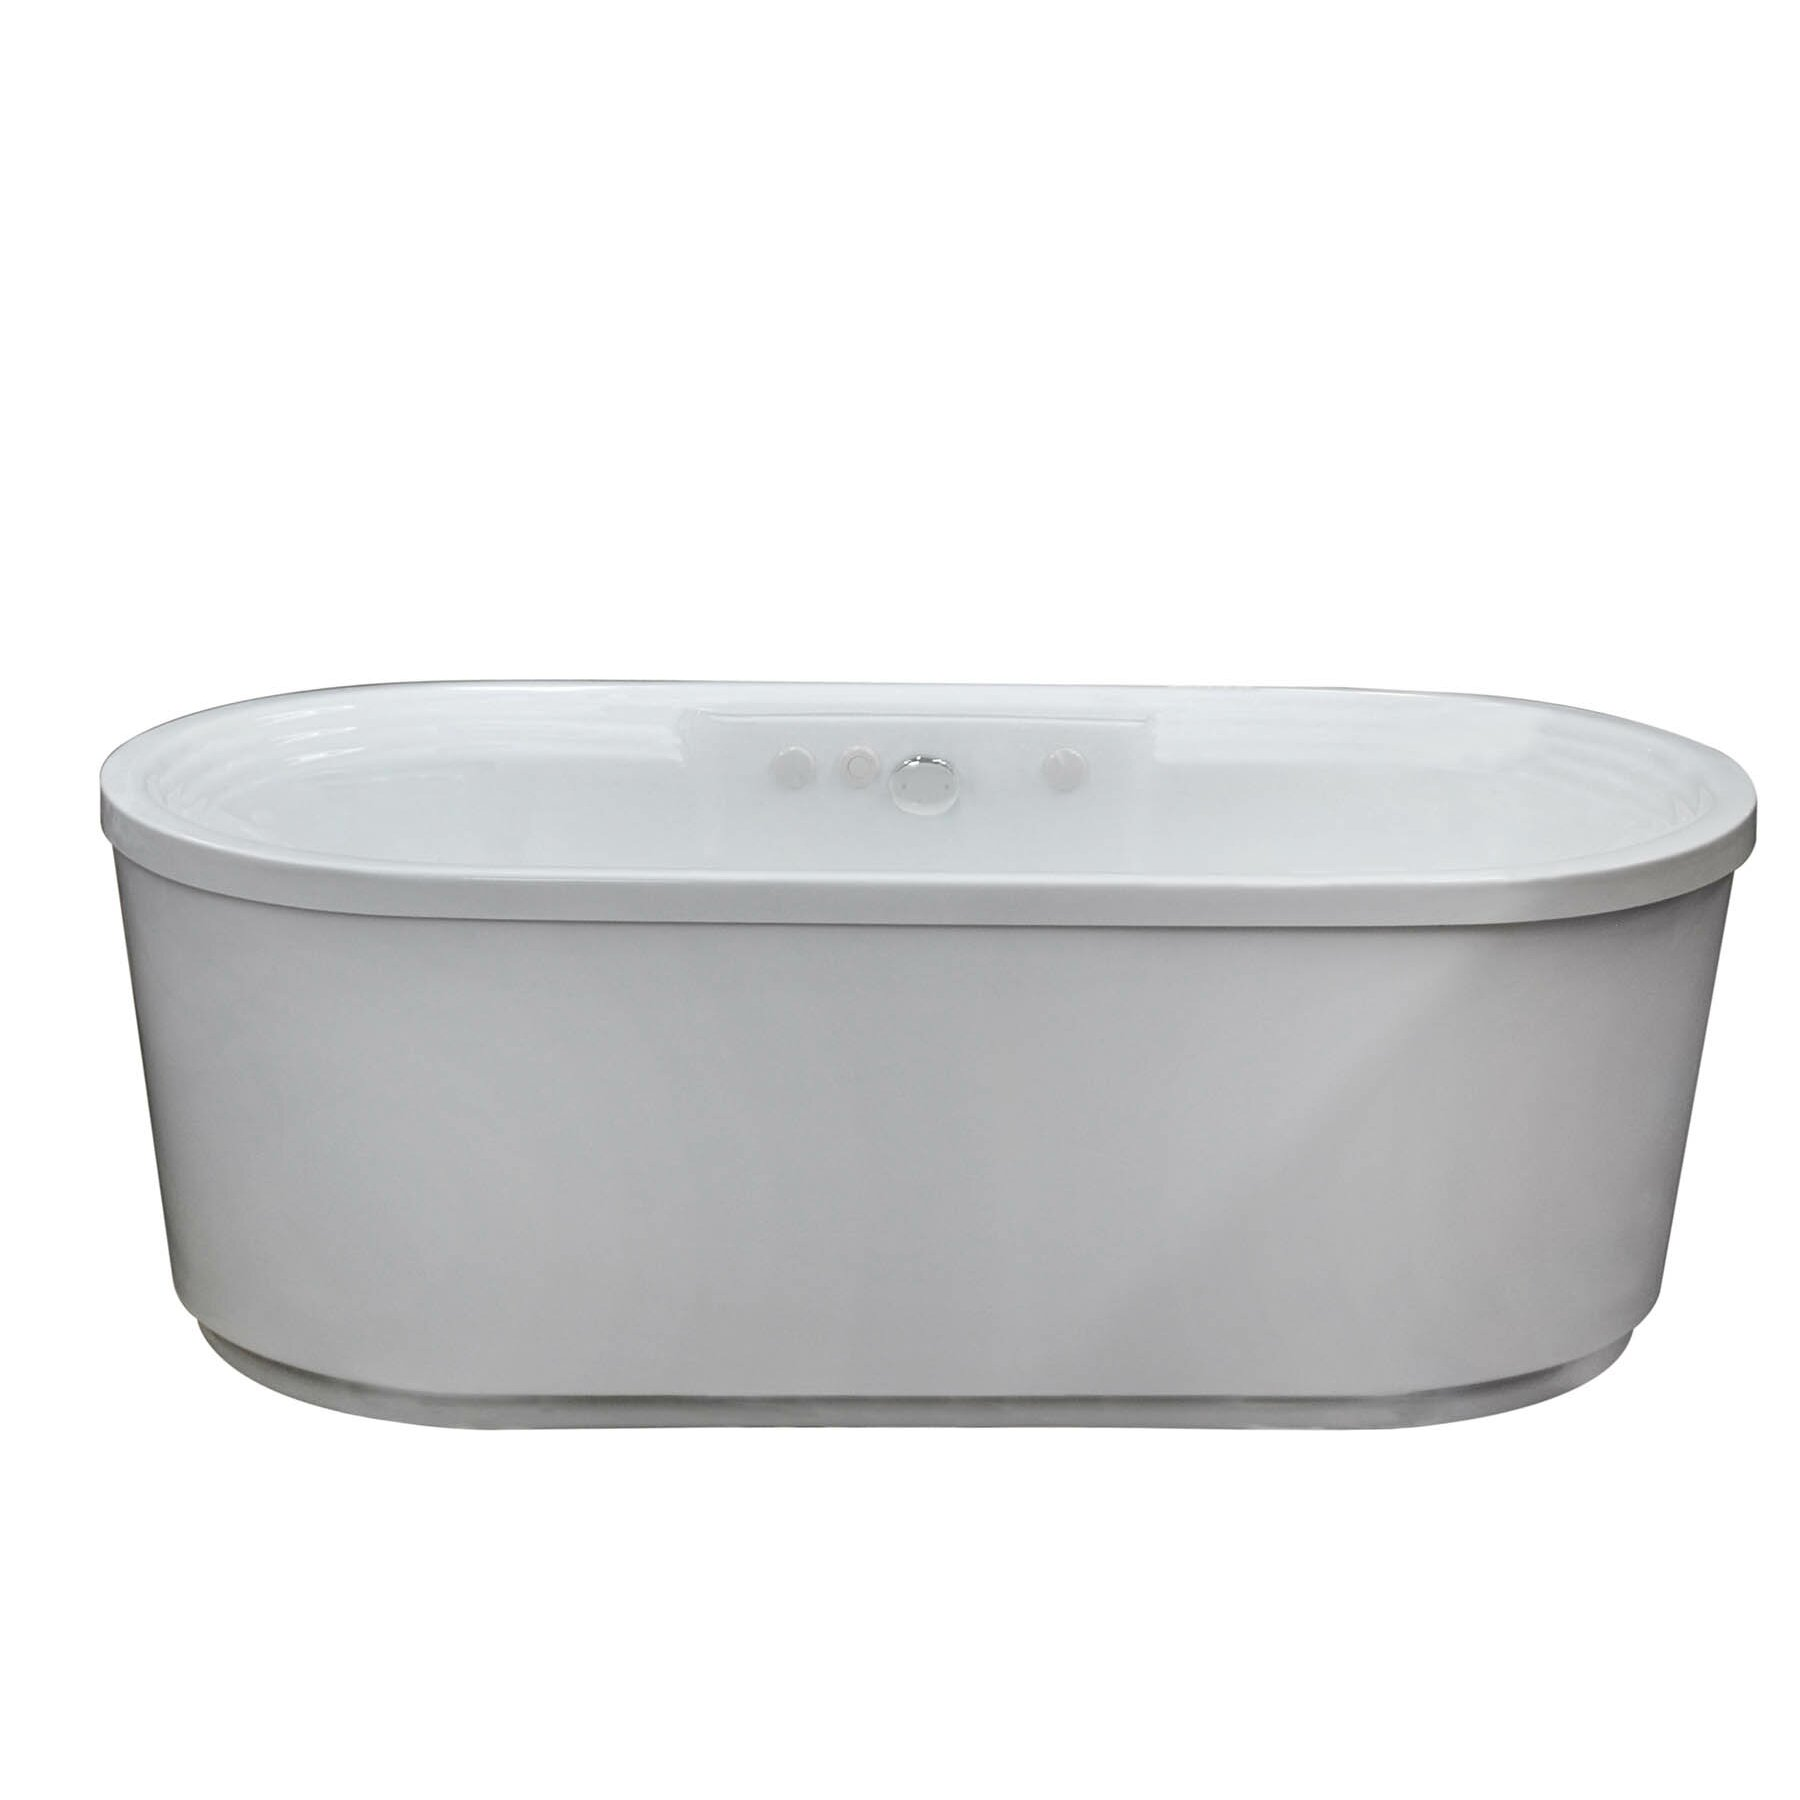 Spa Escapes Royal X Oval Freestanding